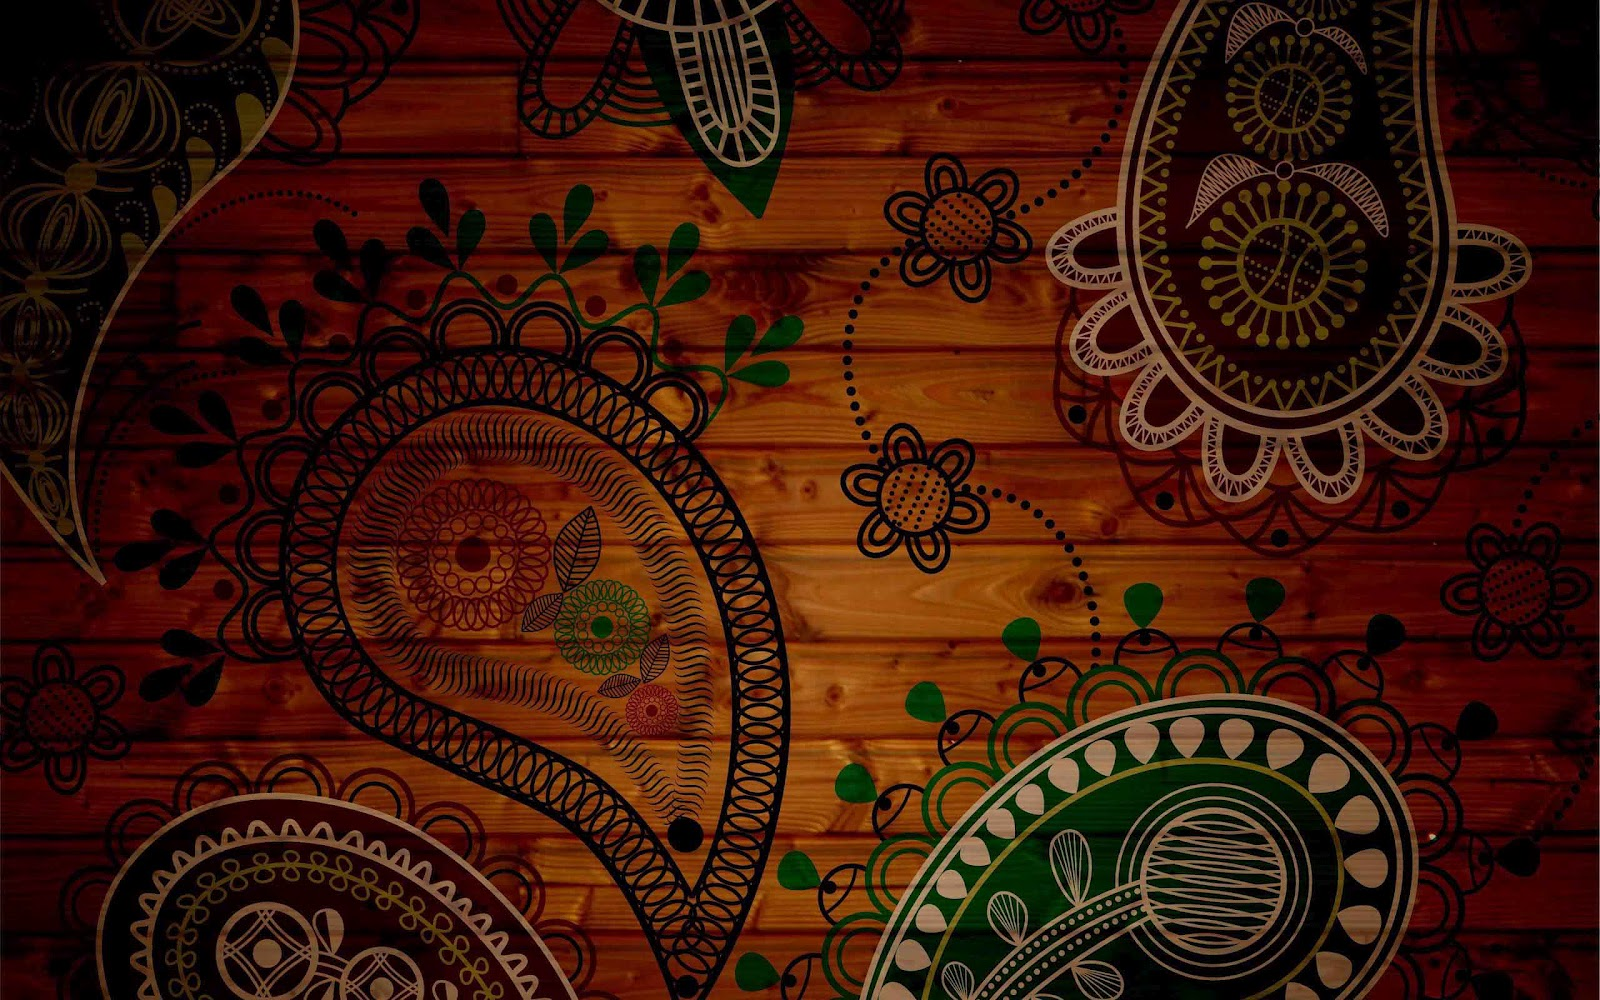 Free Download Amazing Images Indian Design In Hd 1600x1000